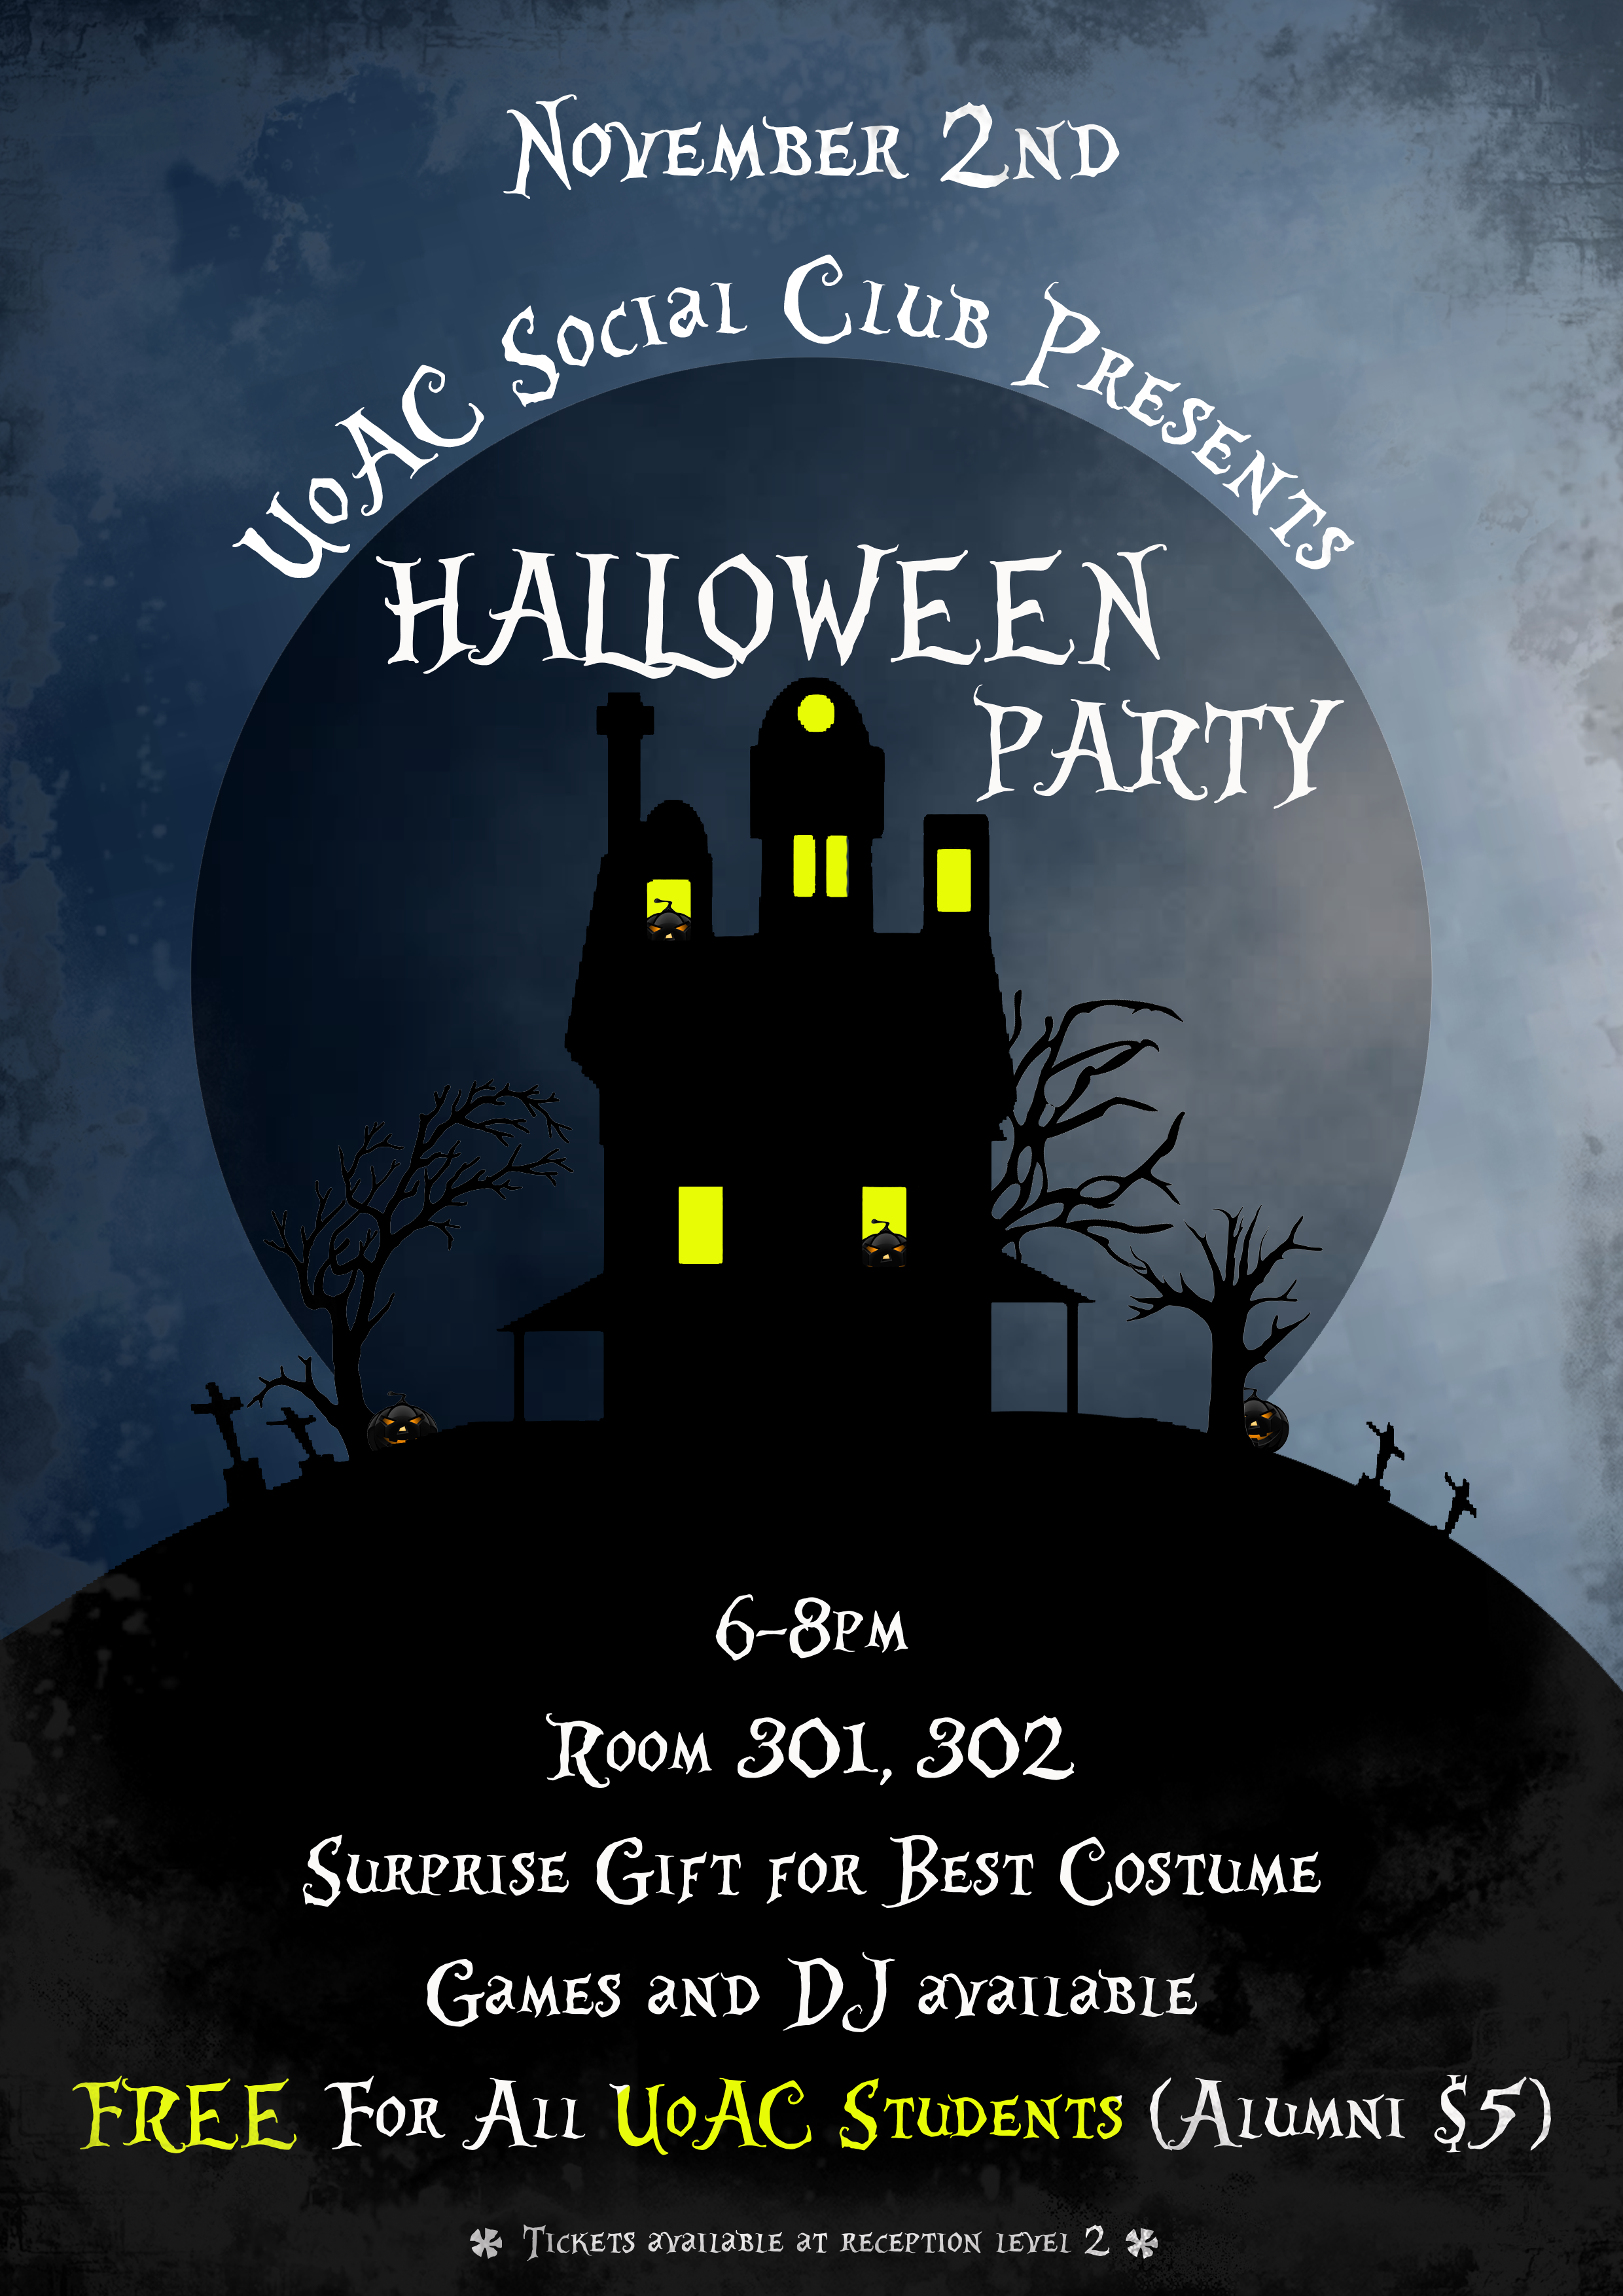 Attachment Halloween Party.png